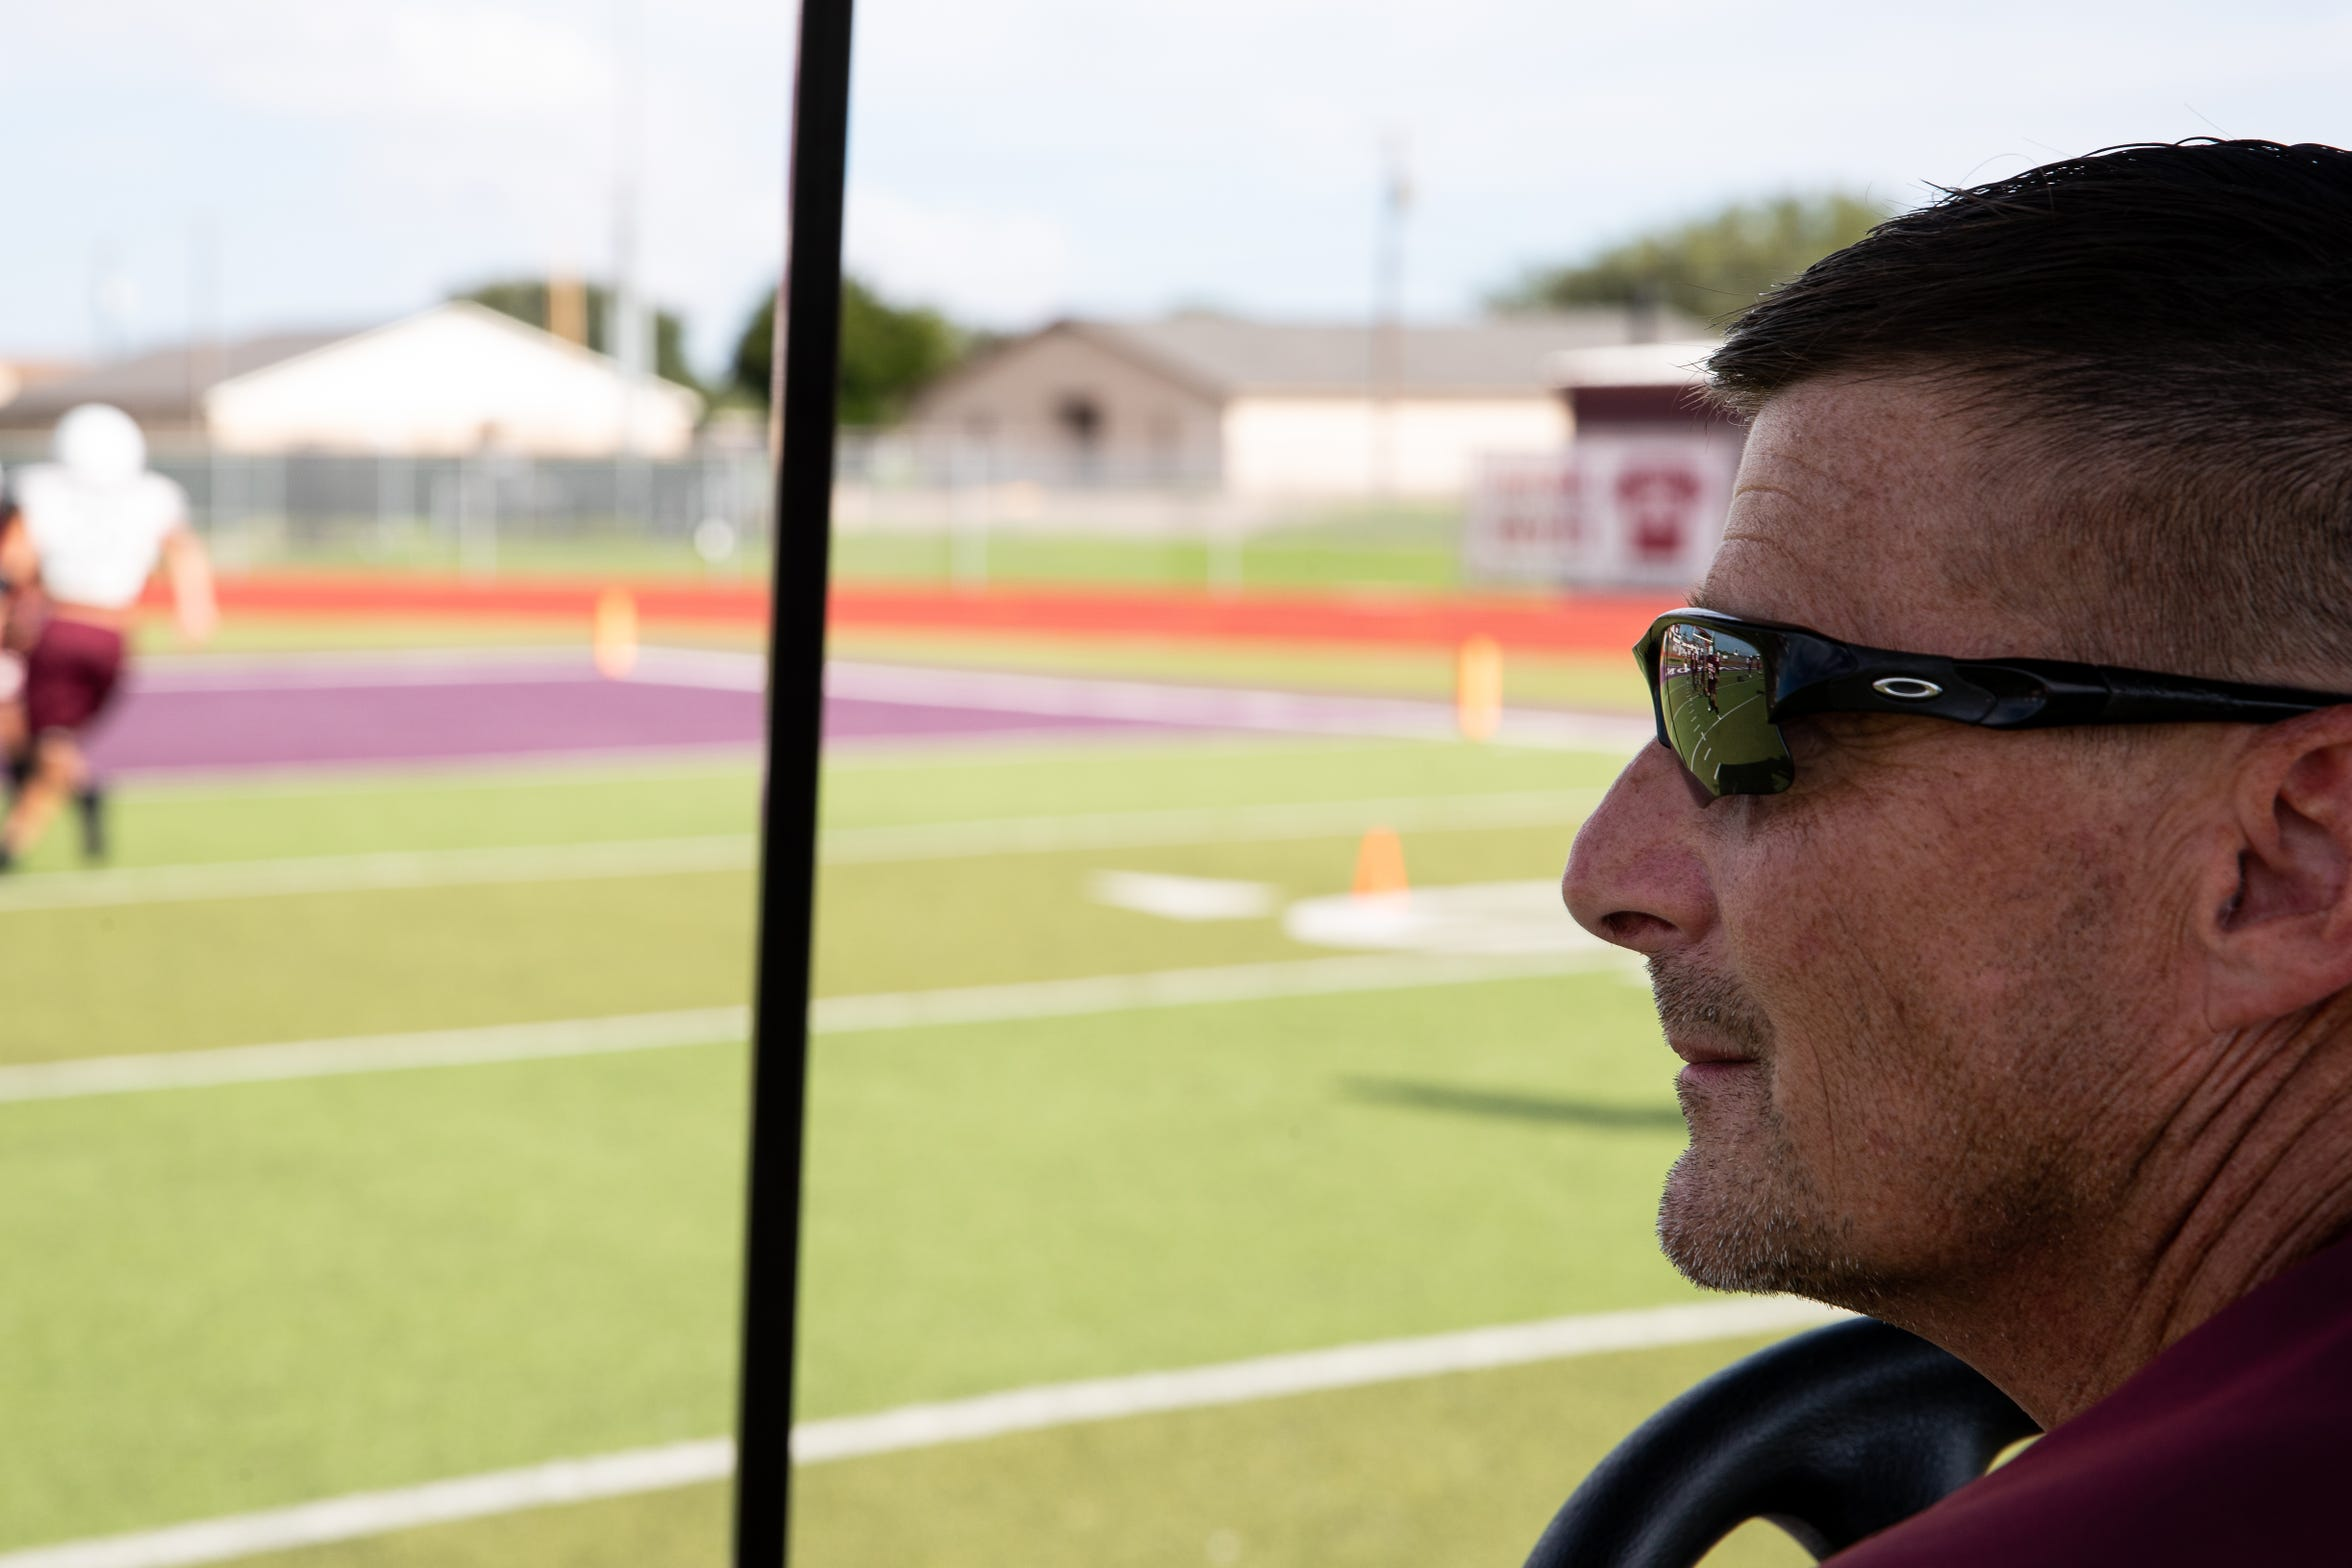 Tom Allen head coach of the Sinton football team watches from his cart as the team runs drills on the field during practice at Sinton High School on Tuesday, Sept. 18, 2018. Allen is suffering from a rare neurological disease that has him in a cart during games and practices